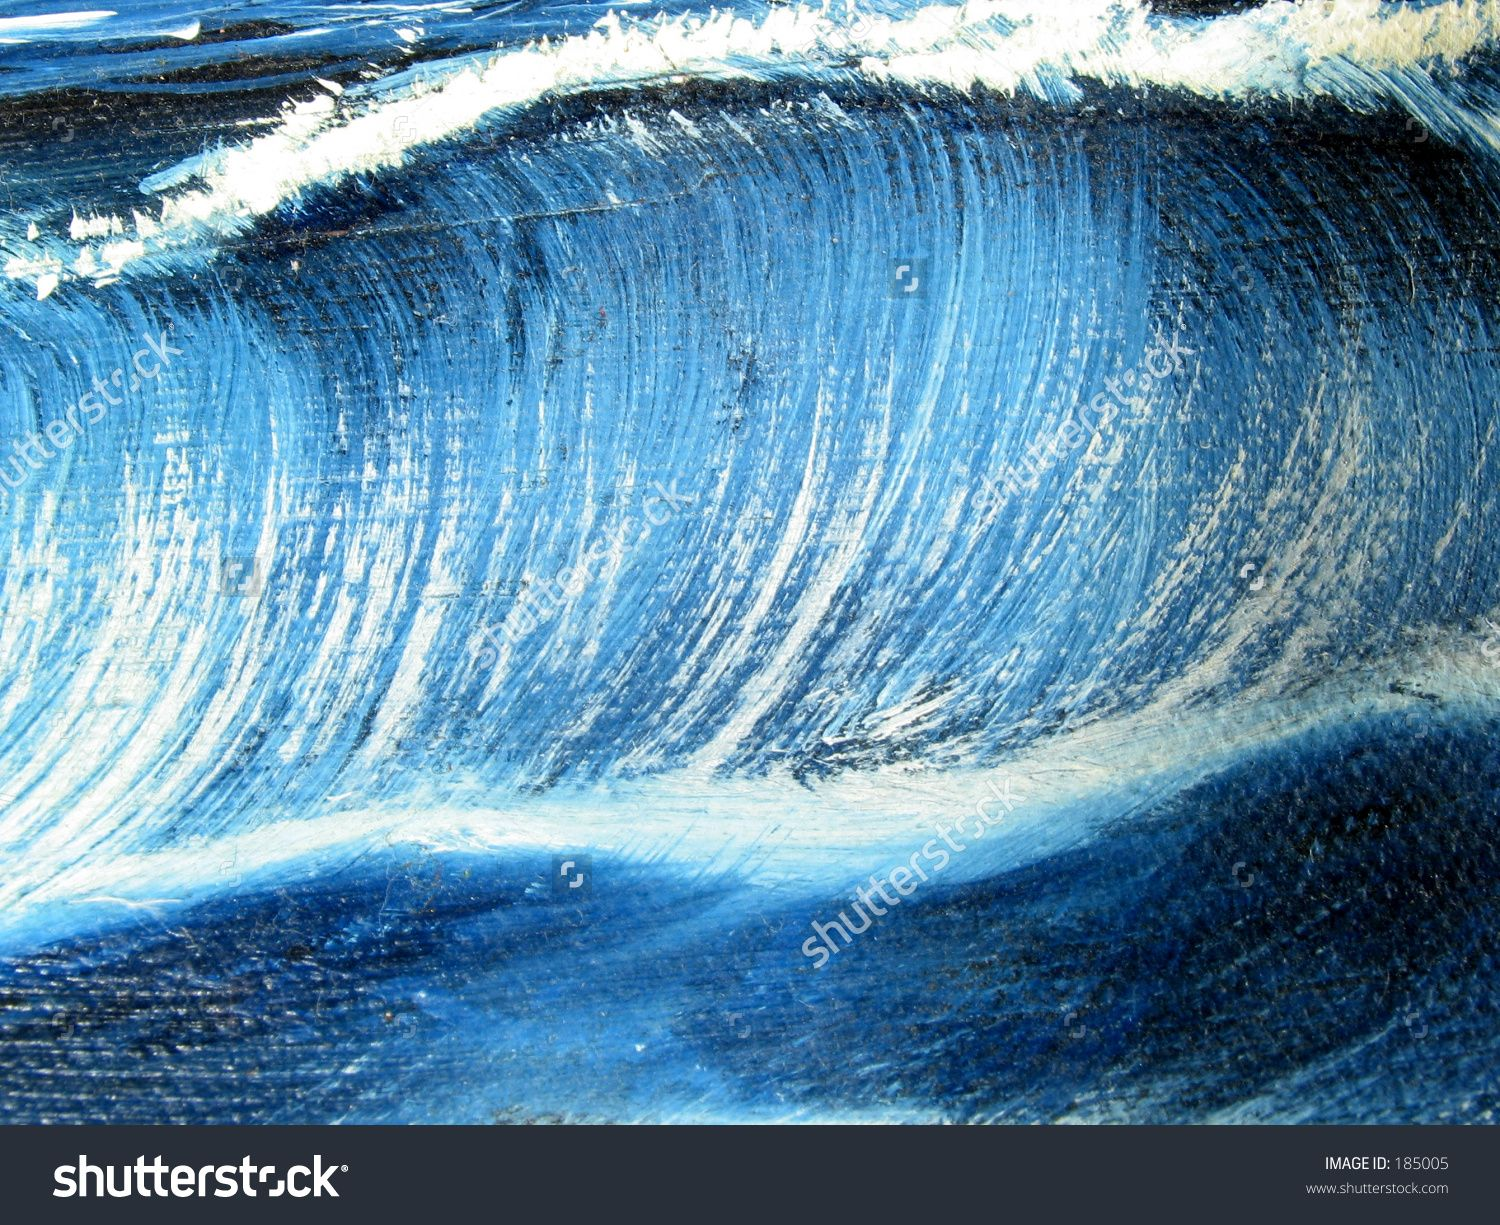 Ocean Wave Oil Painting Texture Stock Photo 185005 Shutterstock Oil Painting Texture Oil Painting Ocean Waves